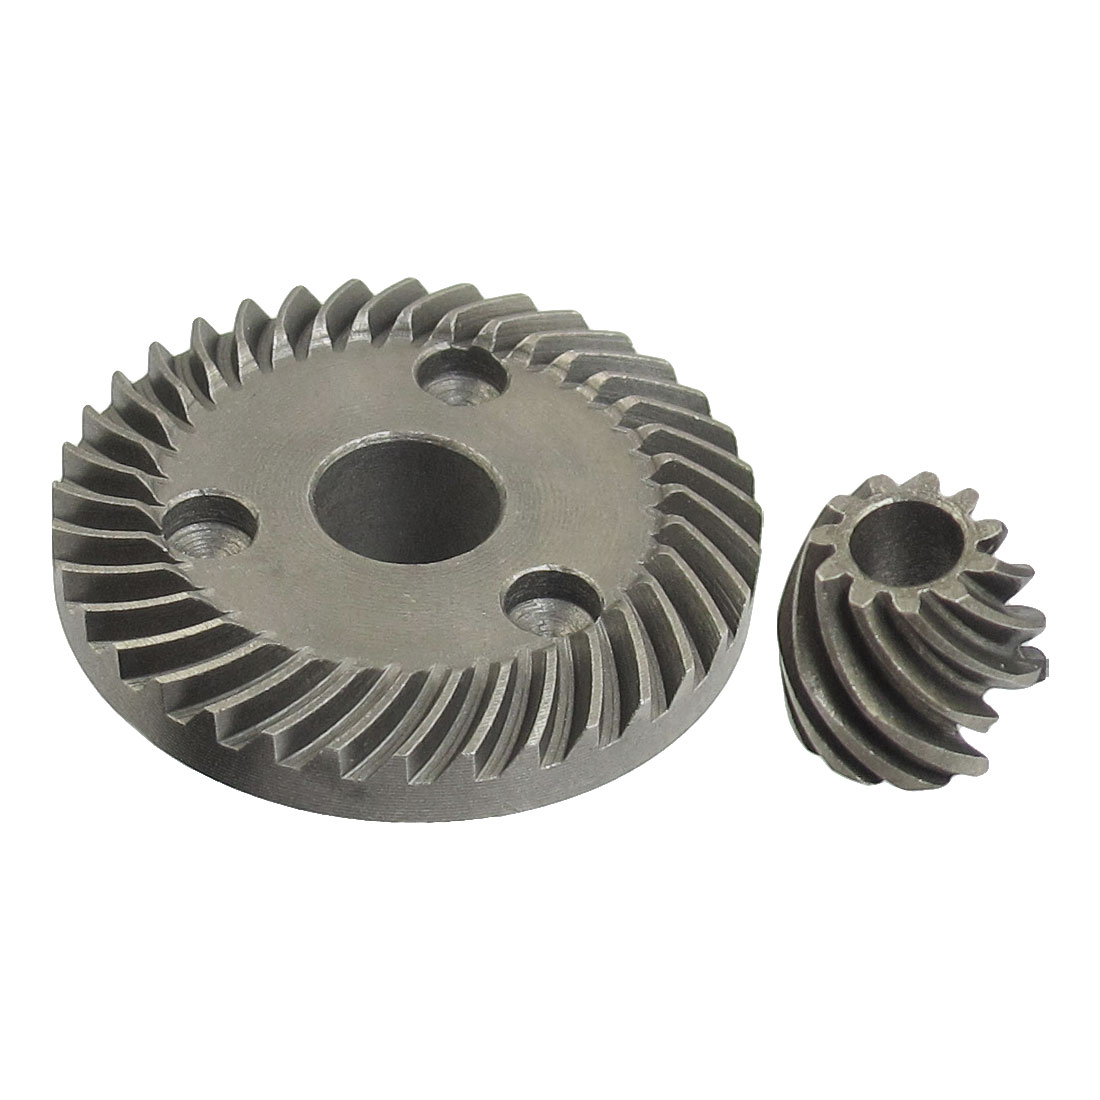 Electric Power Tool Angle Grinder Spiral Bevel Gear for Makita 9523